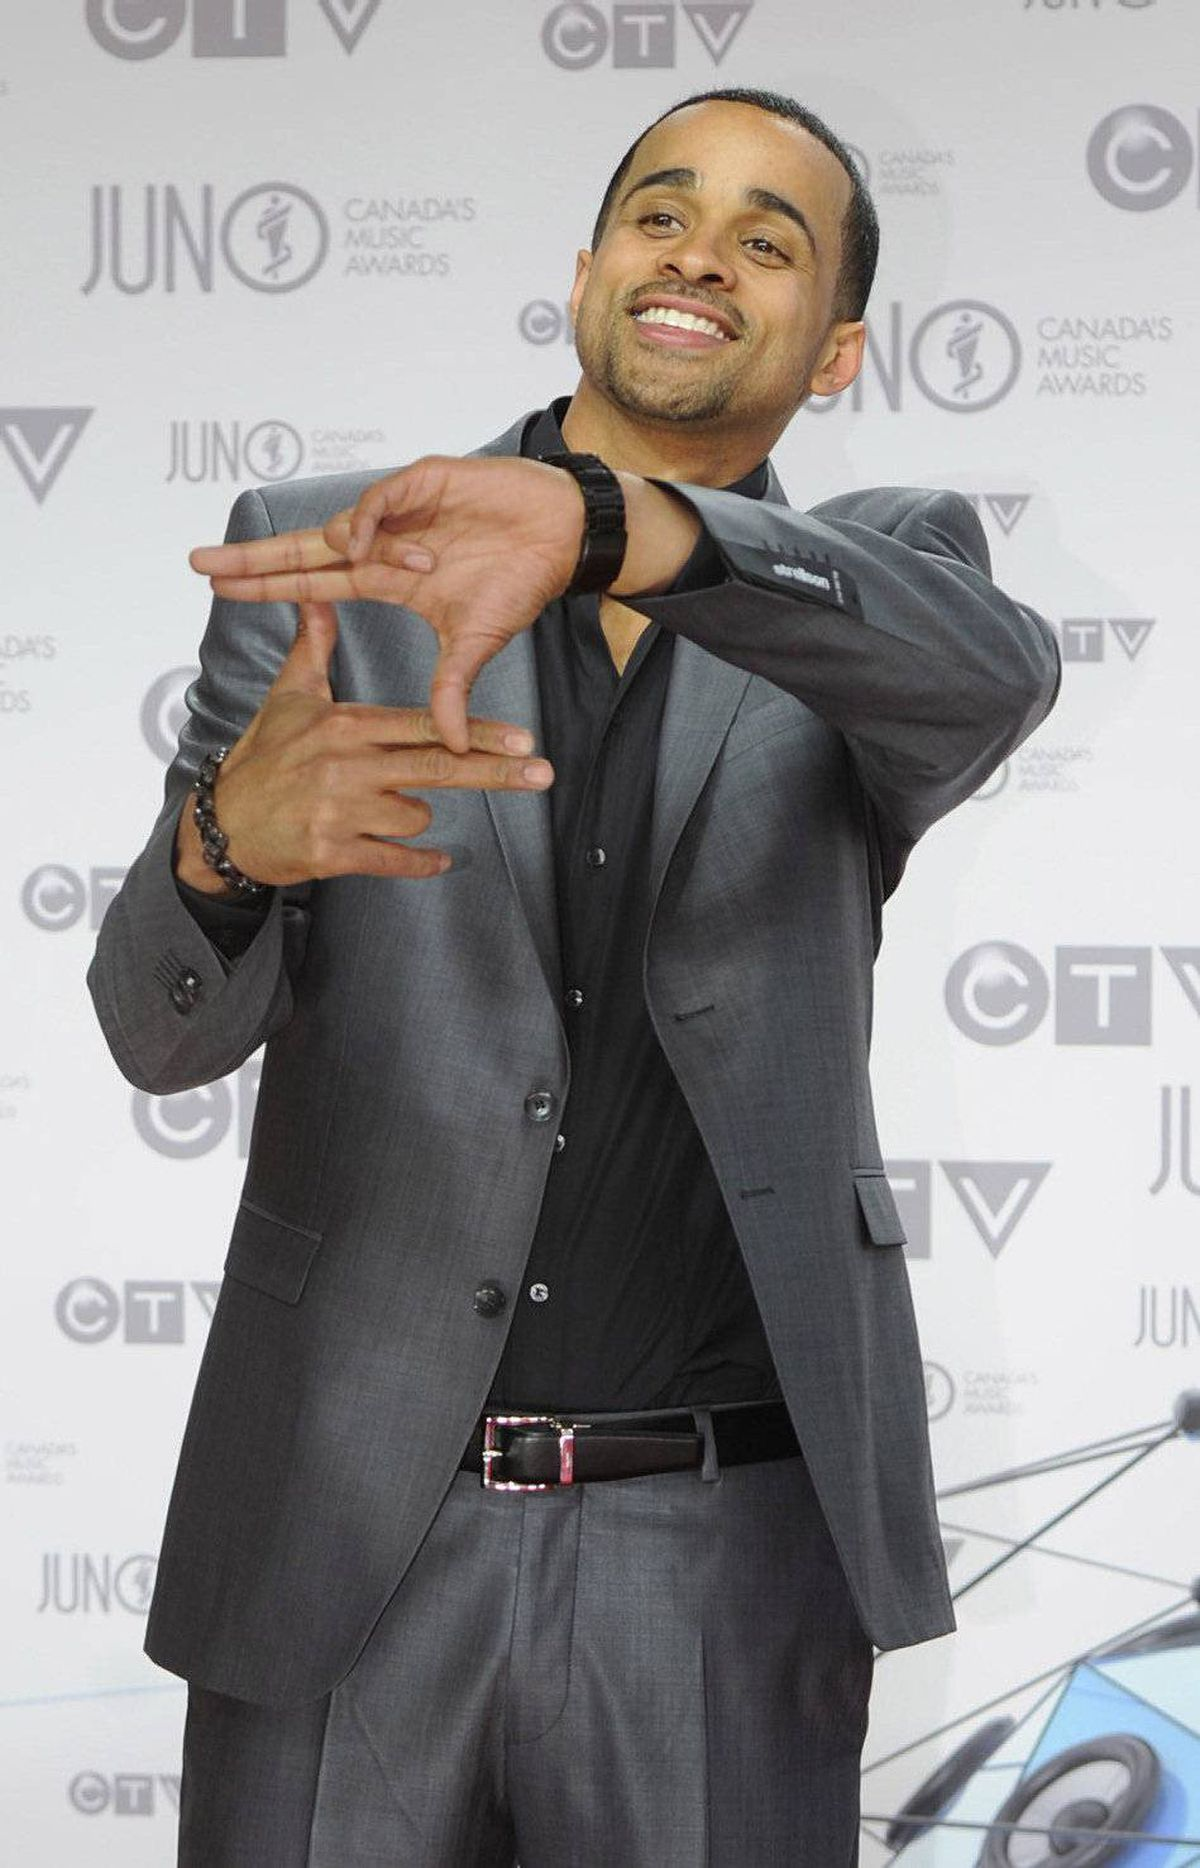 Jrdn poses for photographers as he arrives on the red carpet at the Juno Awards in Ottawa, Sunday April 1, 2012.